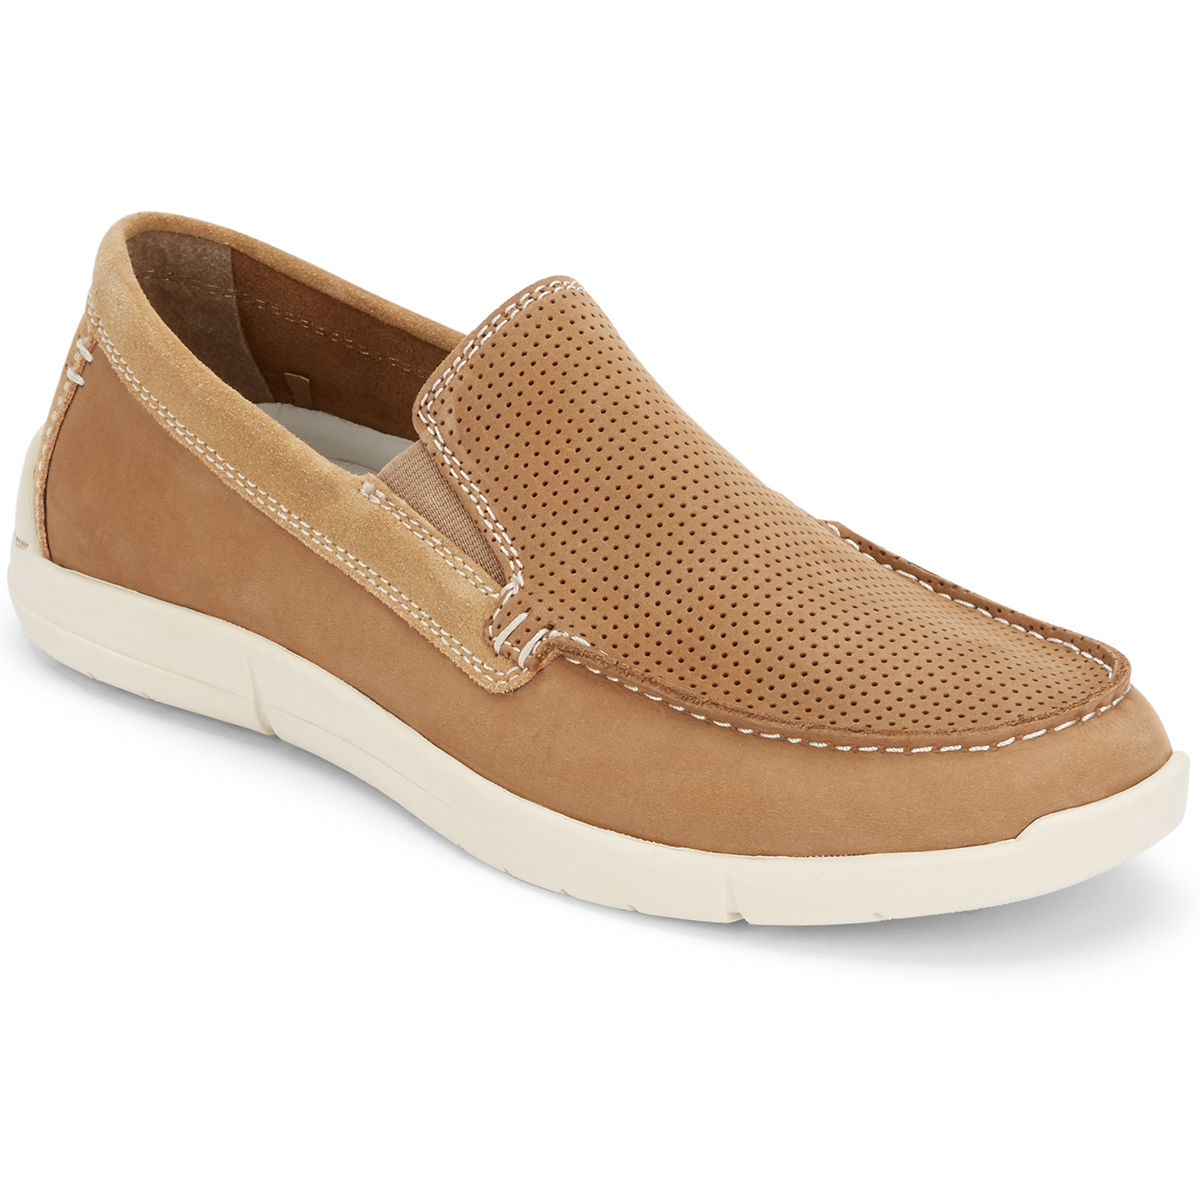 Dockers Men's Alcove Slip-On Boat Shoes - Brown, 11